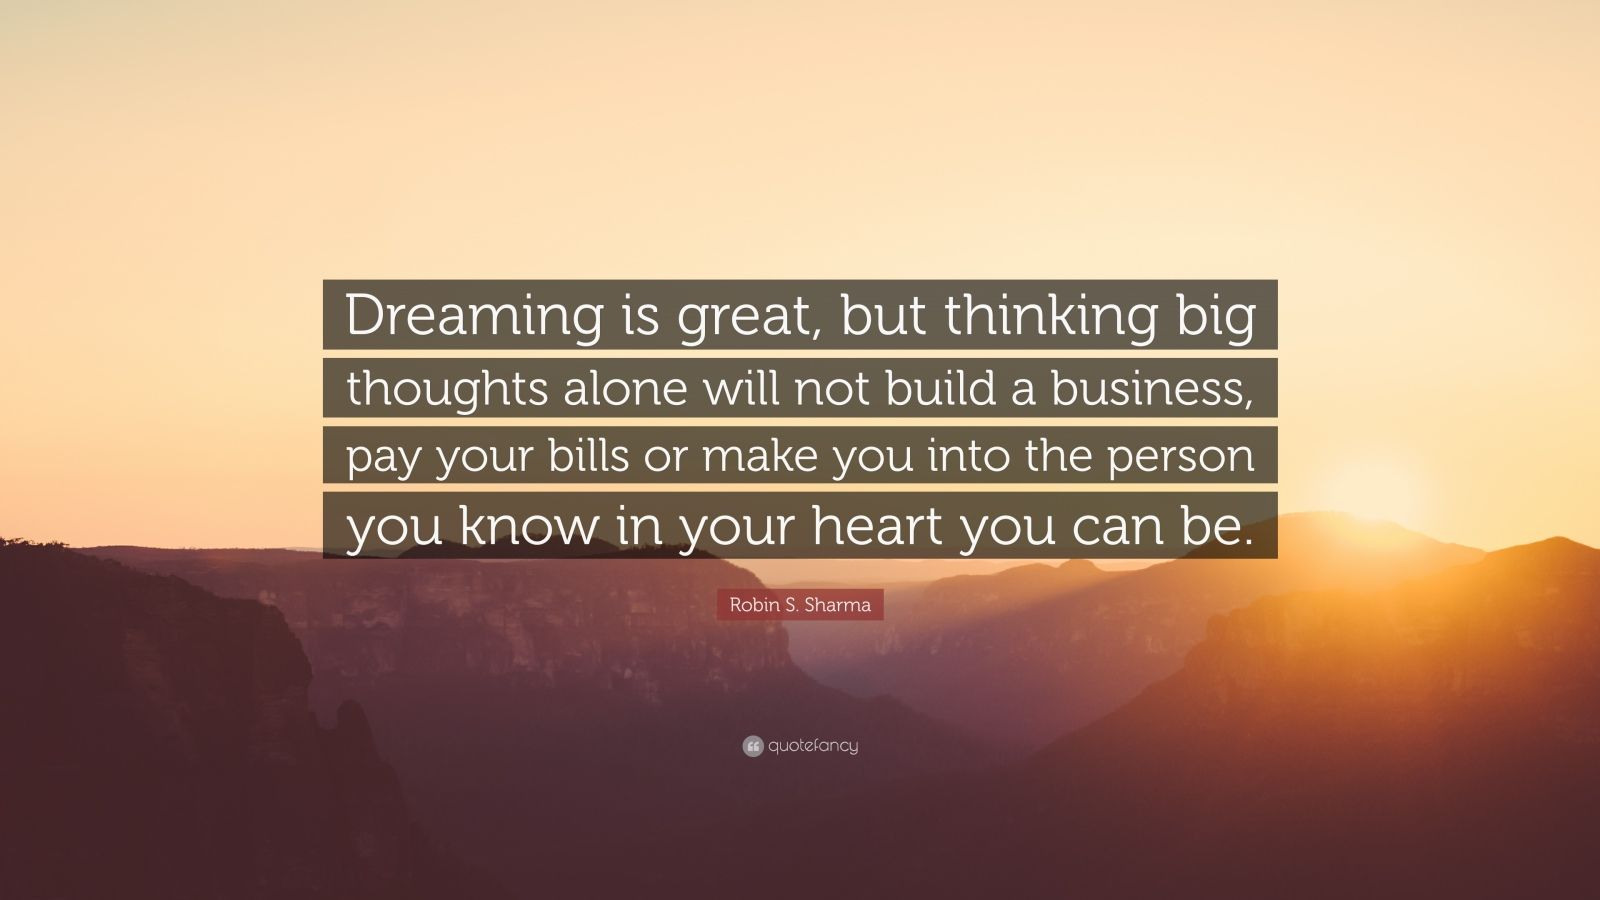 "Robin S. Sharma Quote: ""Dreaming is great, but thinking big thoughts alone will not build a business, pay your bills or make you into the person you know in your heart you can be."""